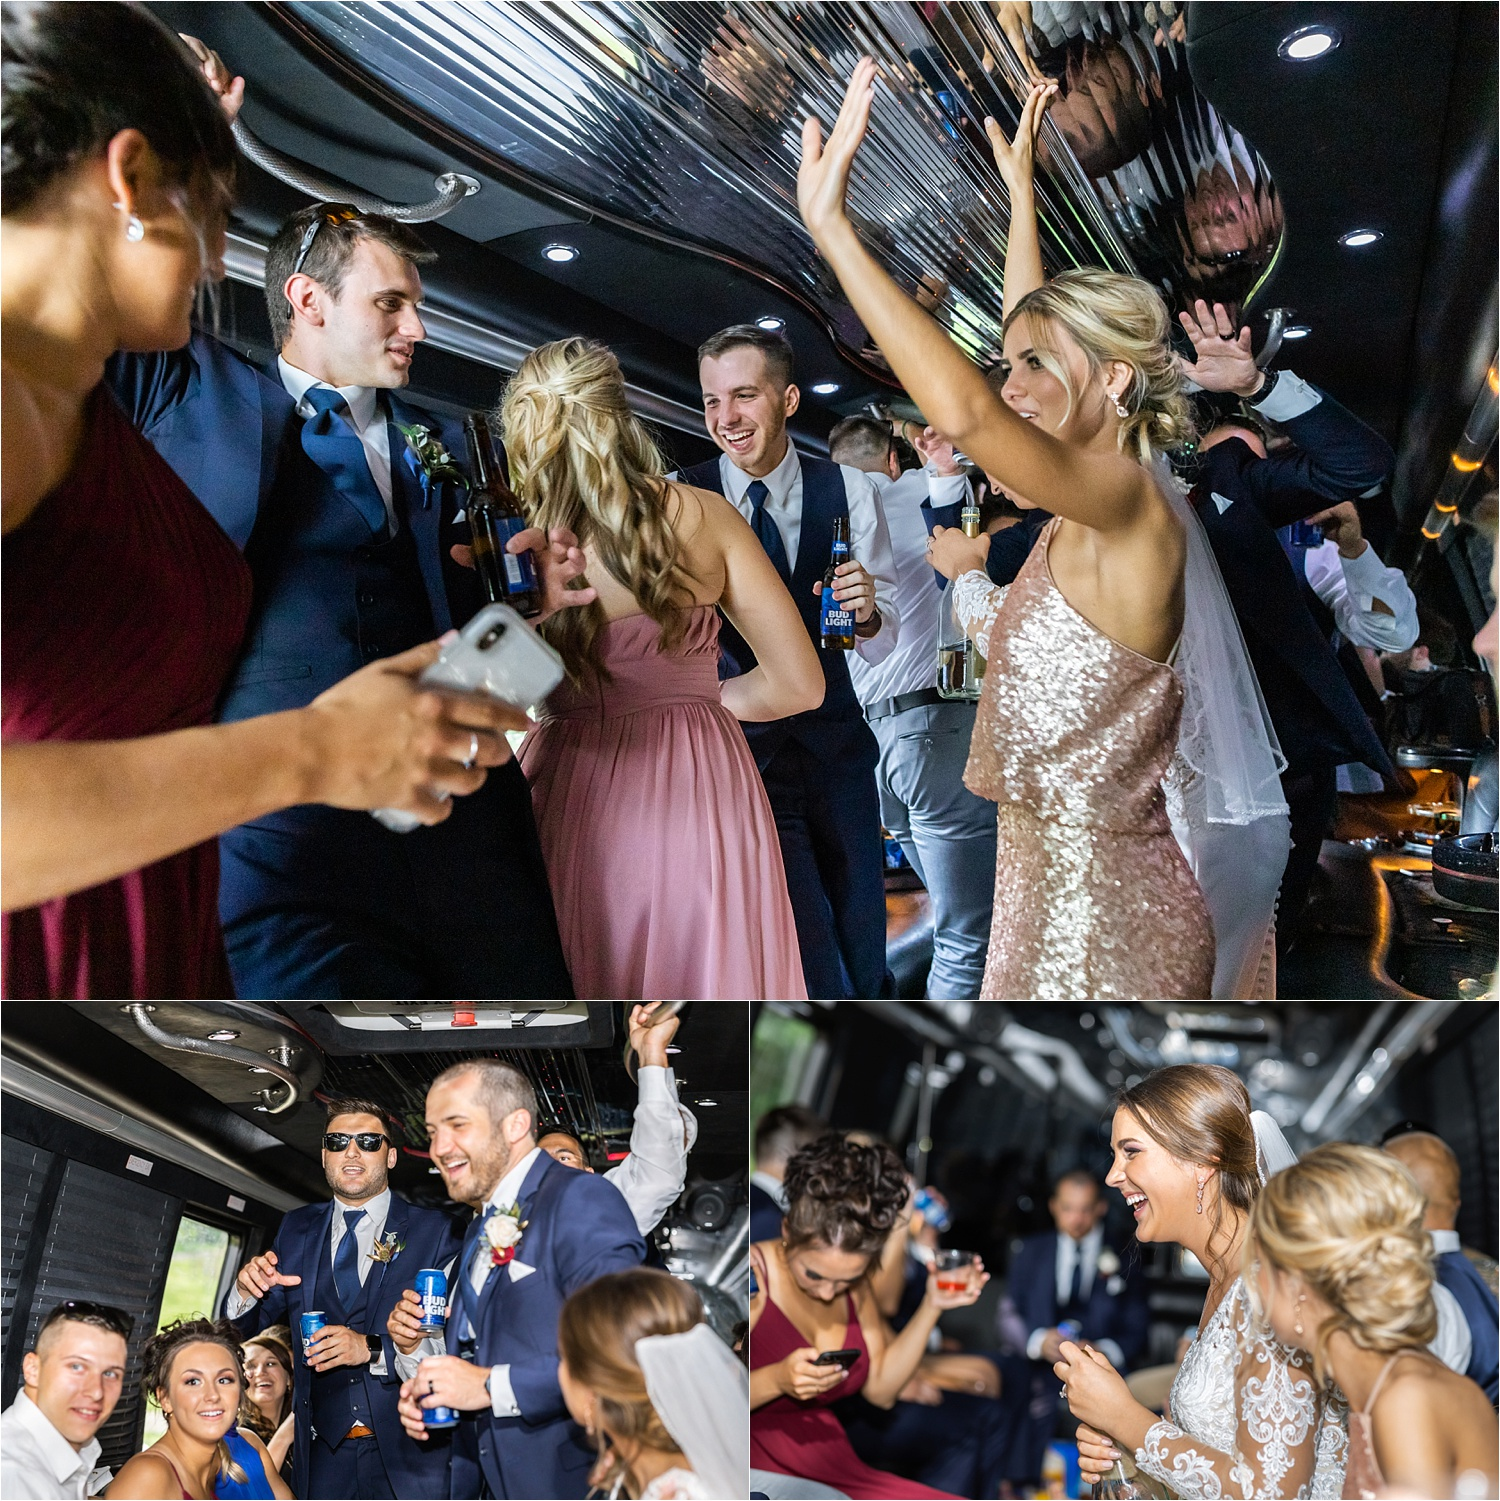 They put the PARTY in party bus!